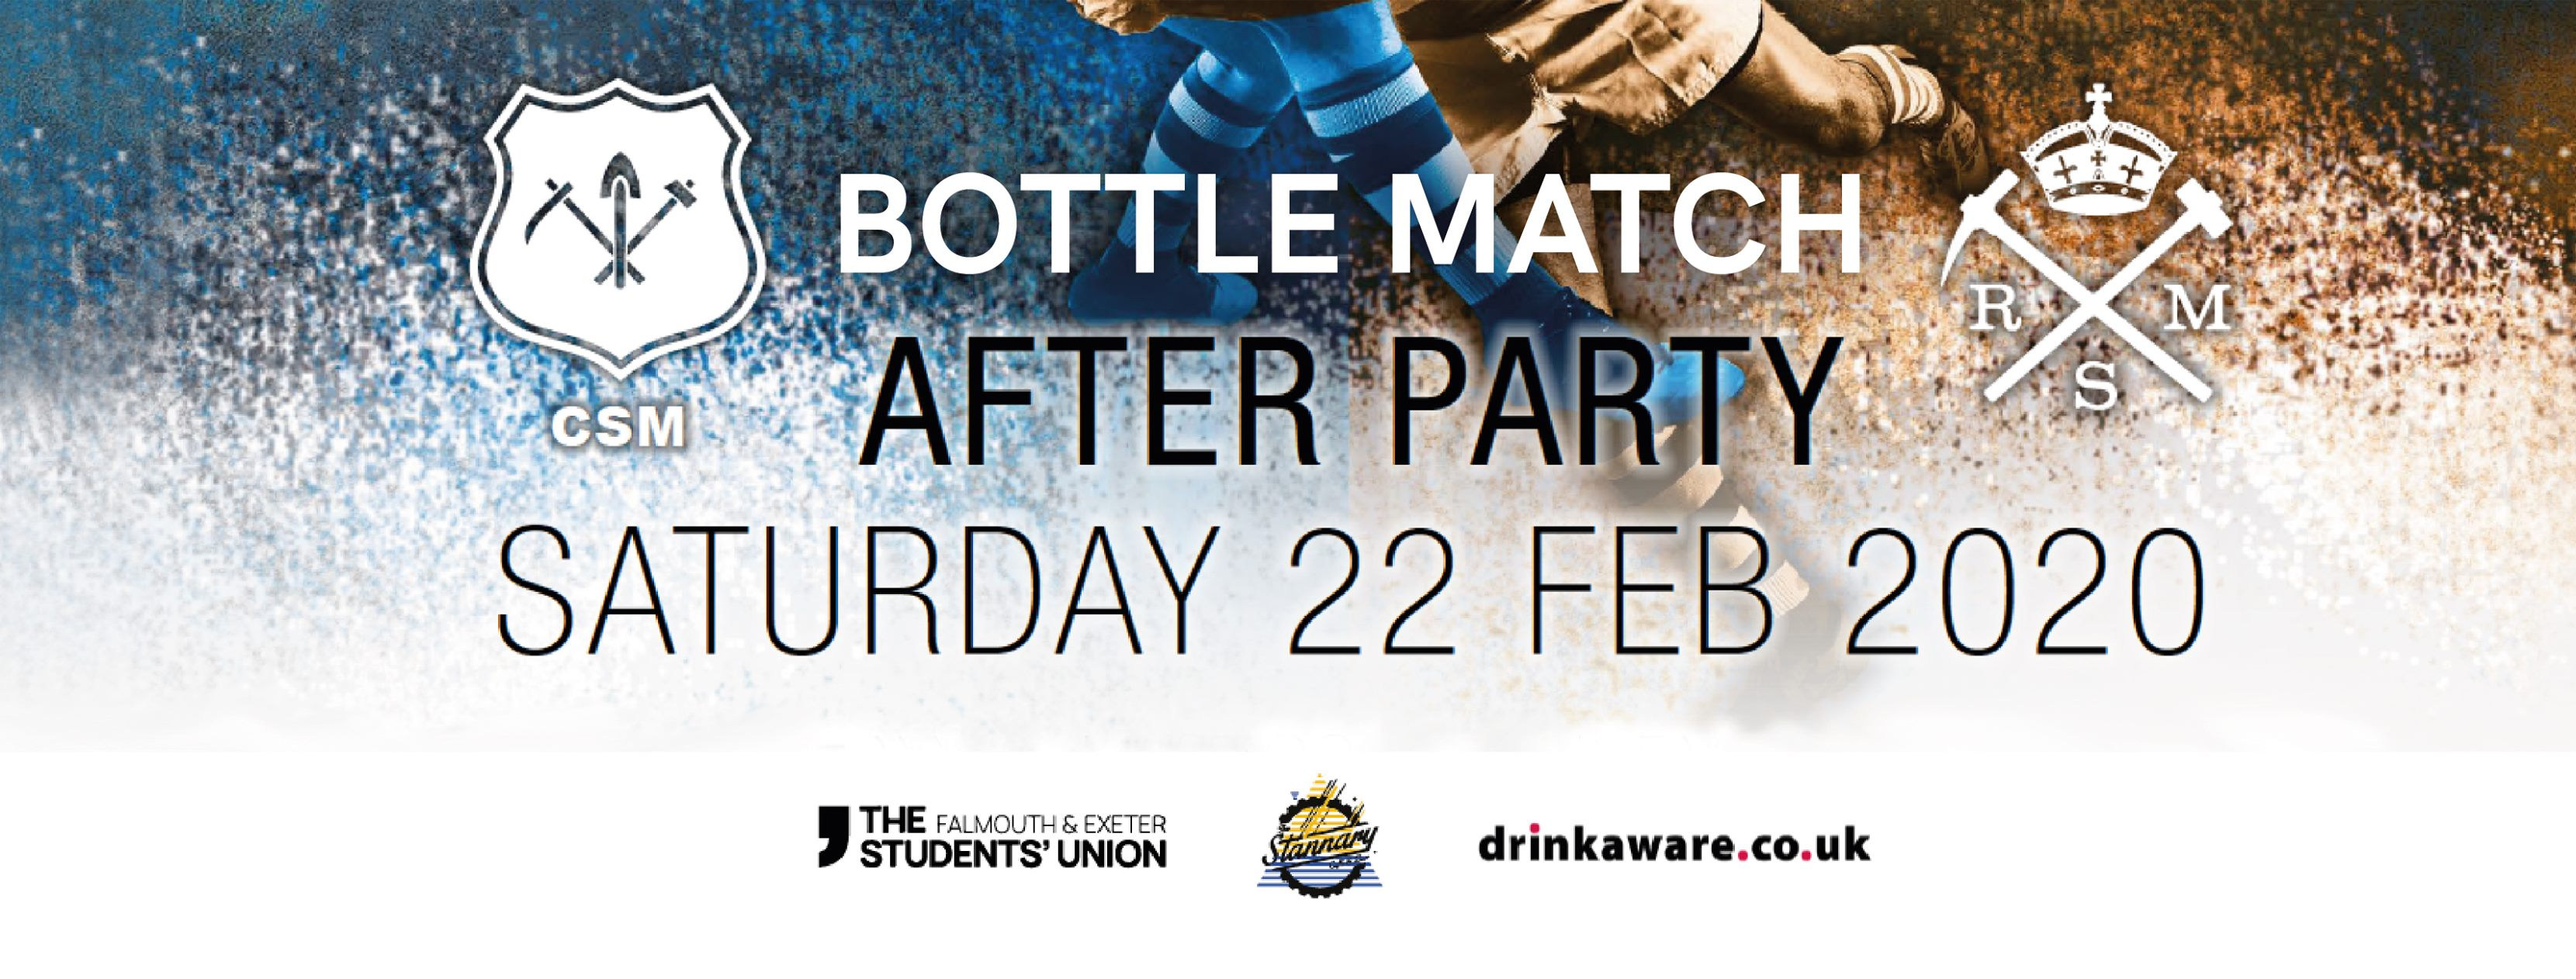 Bottle Match After Party. Saturday 22nd February 2020.